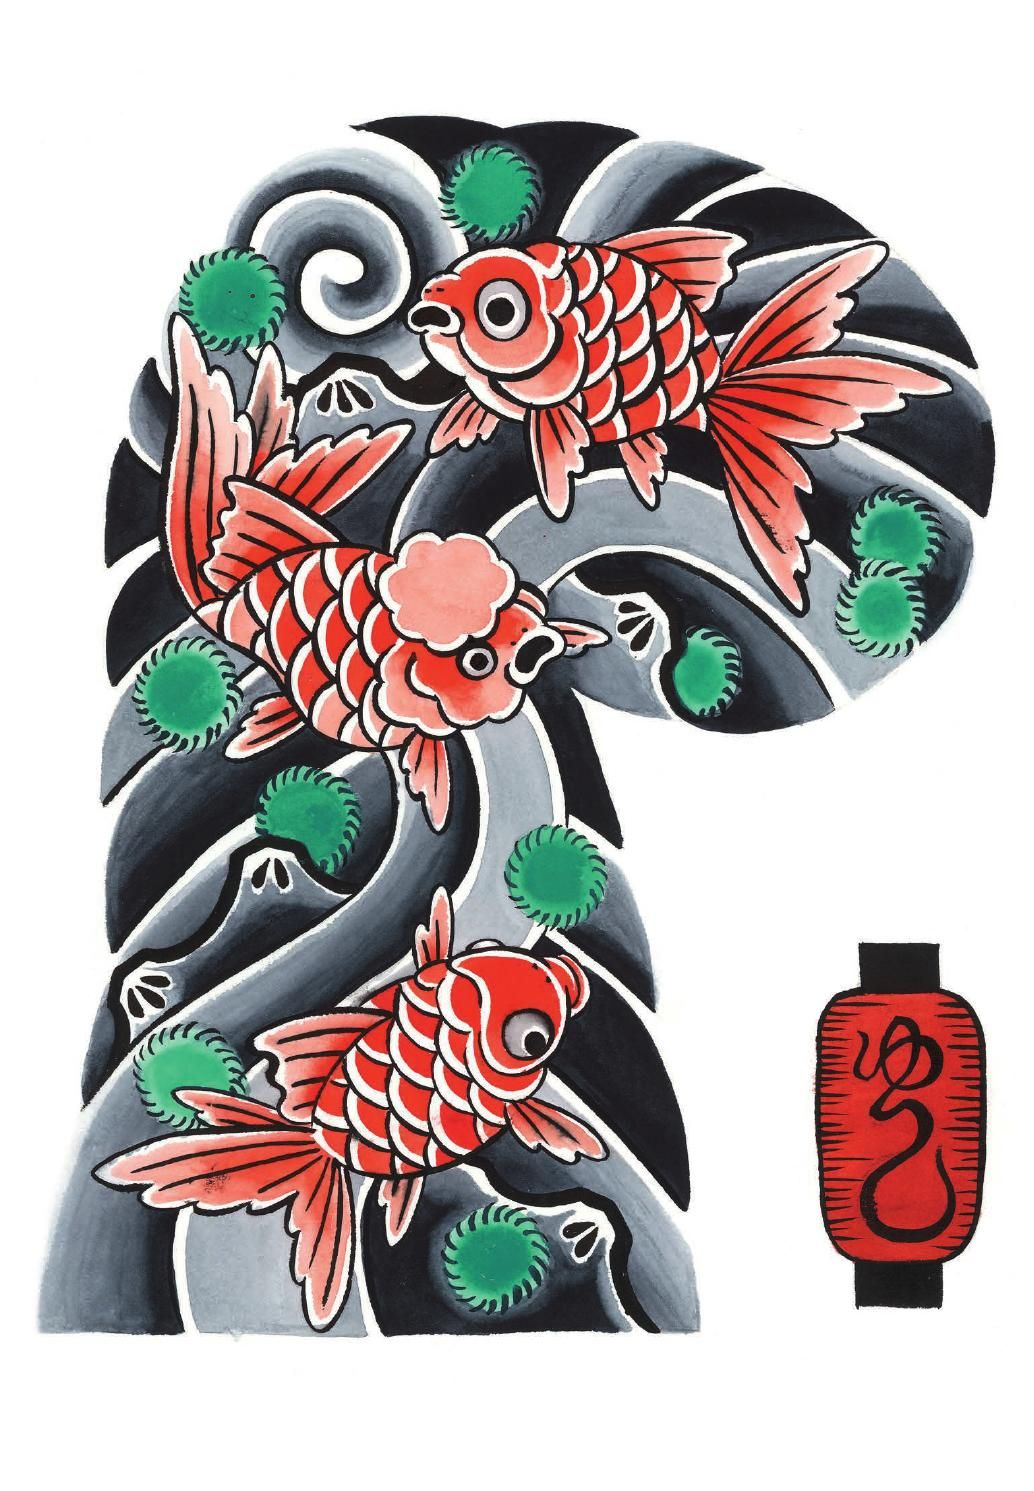 Garyou Tensei Refers To The Final Dot Of Ink That The Japanese Believe Brings Lif In 2020 Traditional Japanese Tattoo Flash Japanese Sleeve Tattoos Japanese Tattoo Art